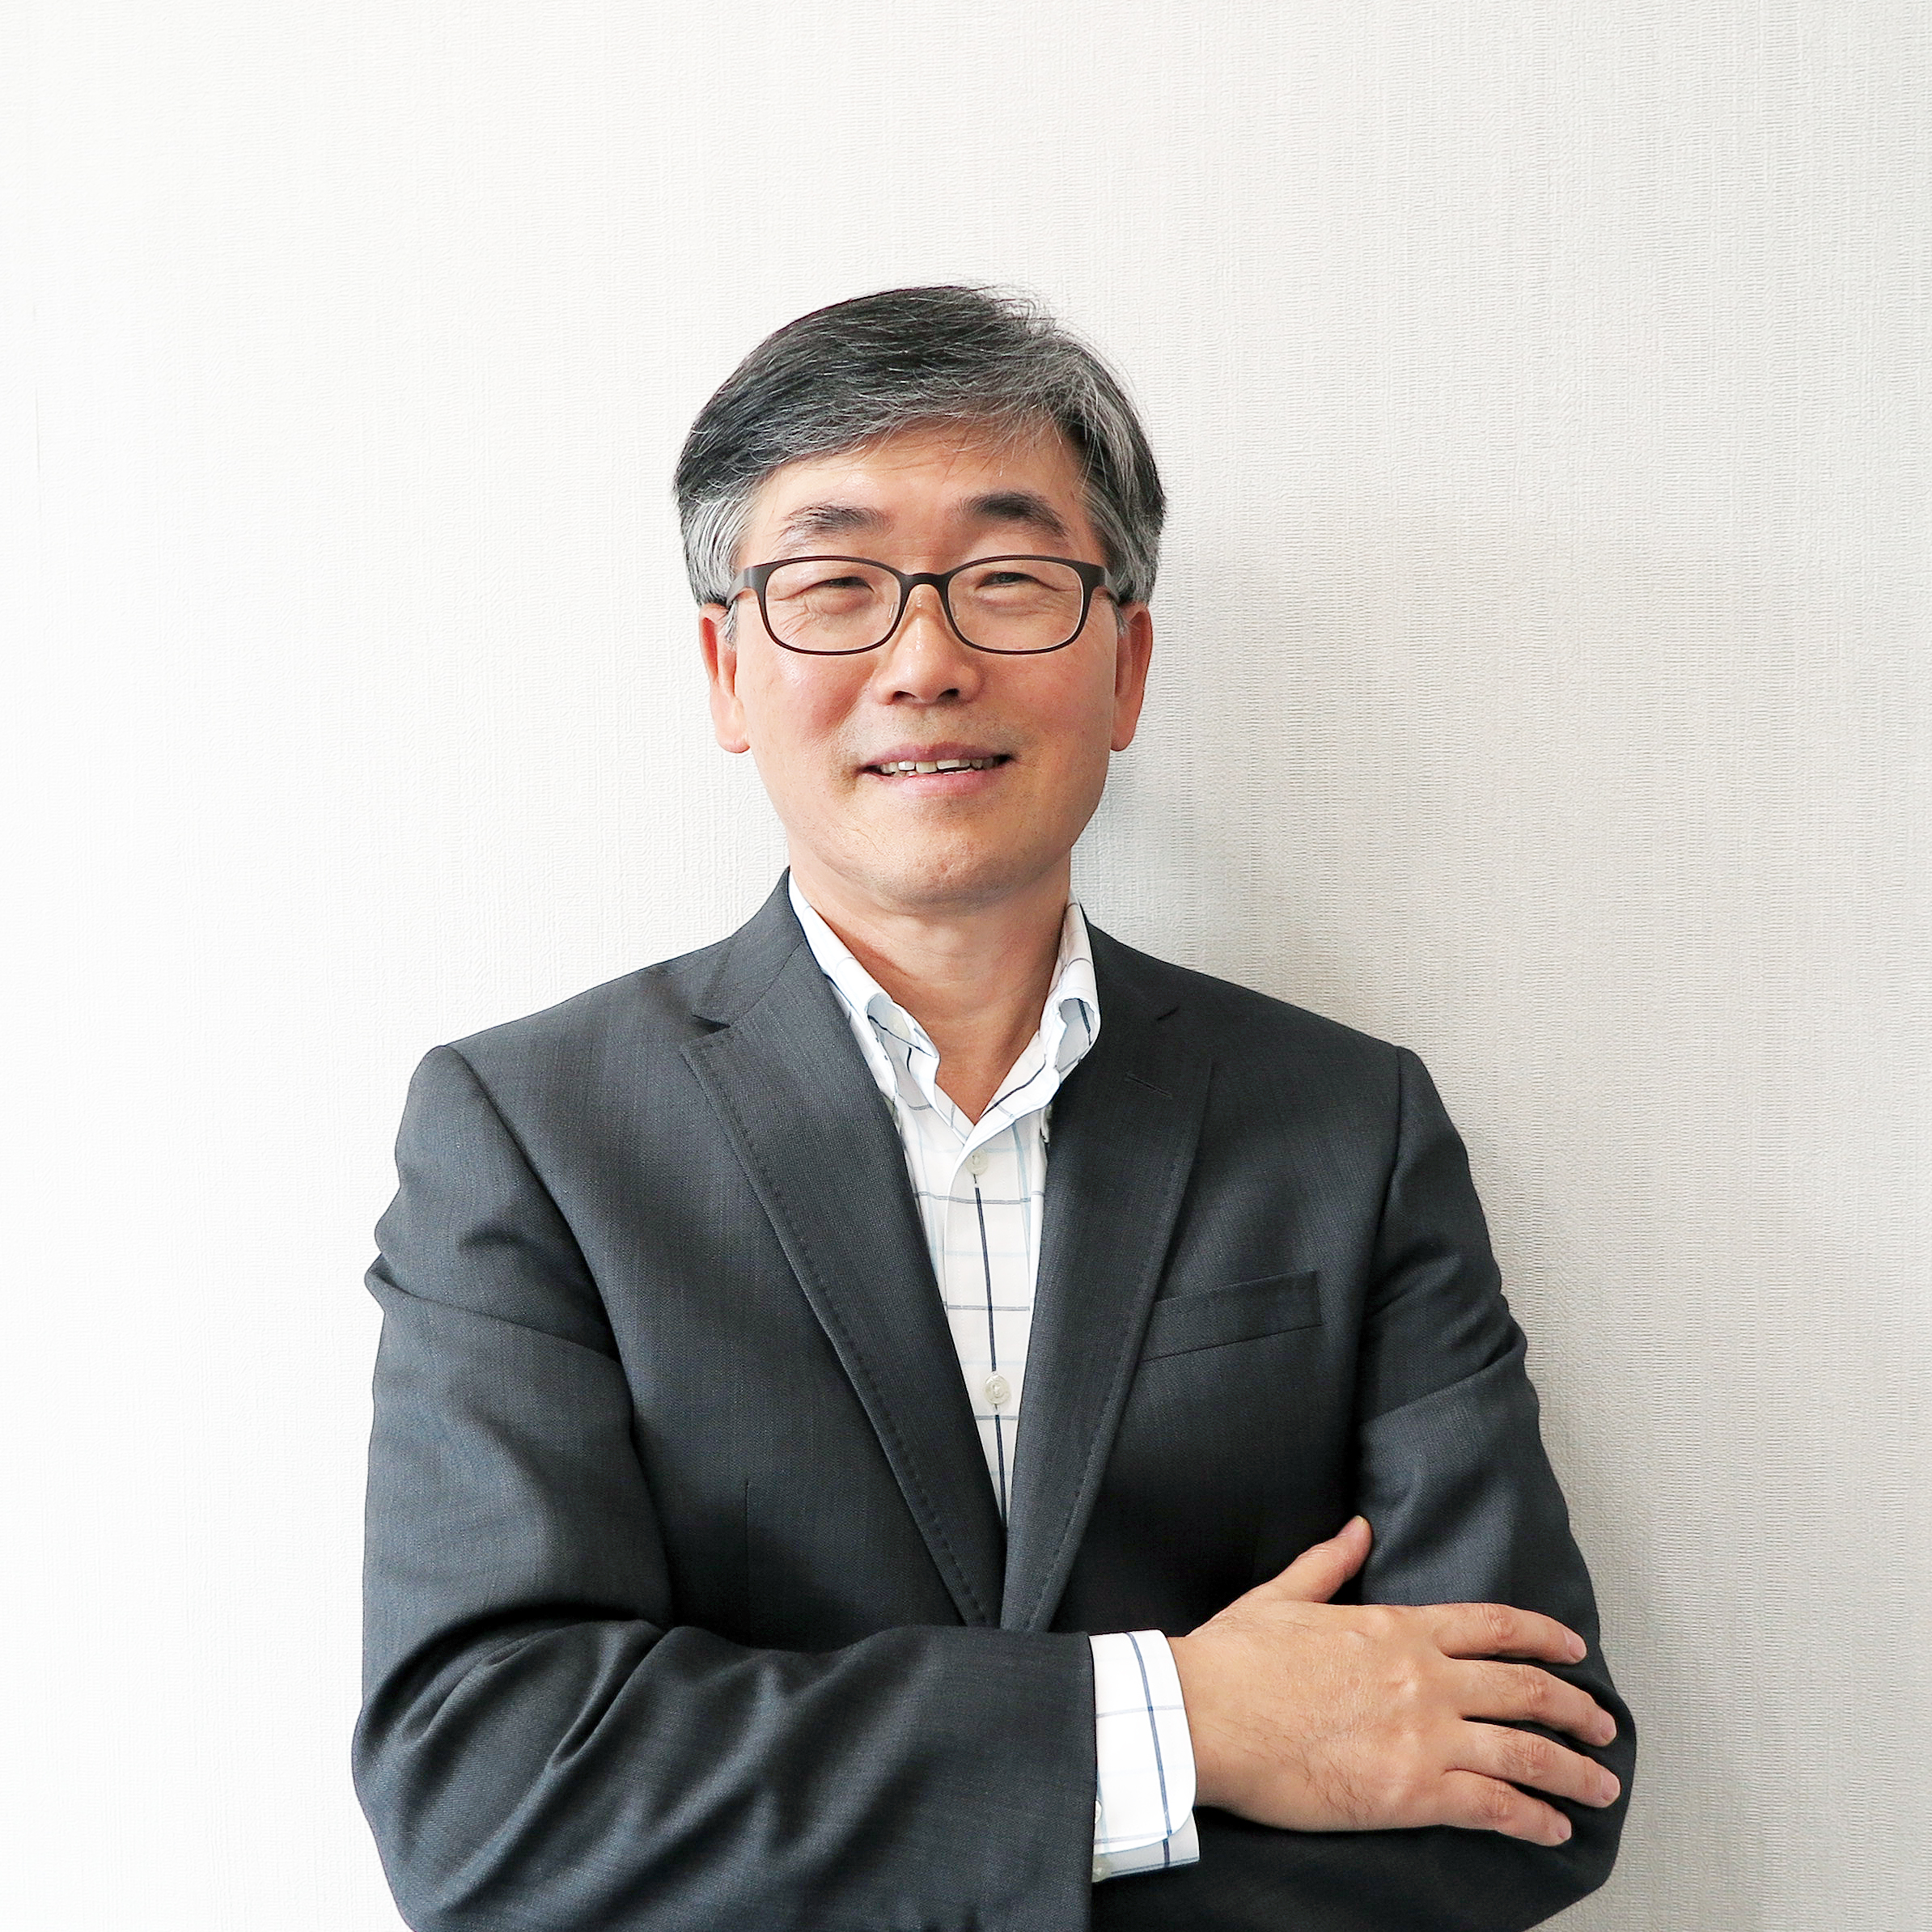 rfhic executive Samuel Cho